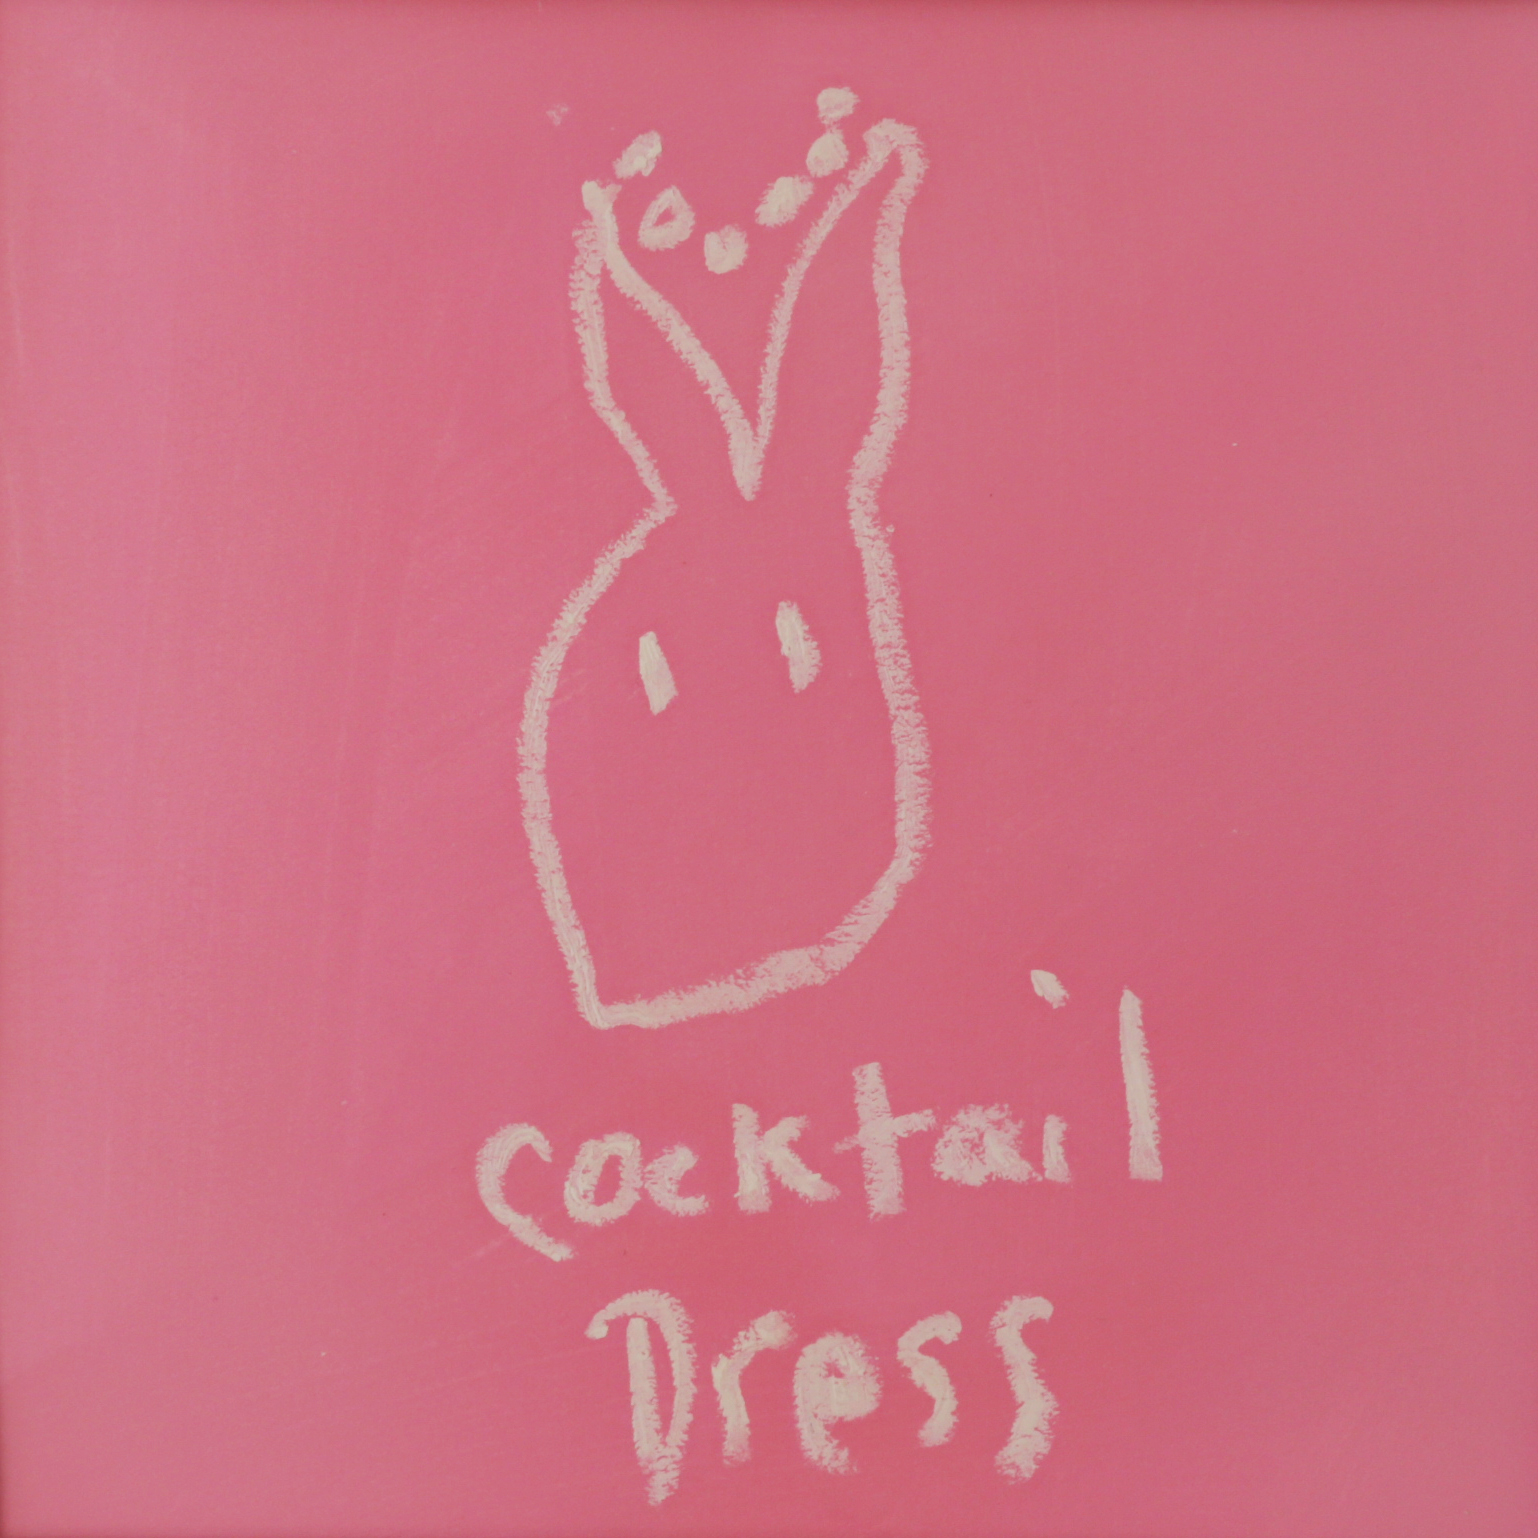 Cocktail Dress , 2018  Gouache and oil pastel on paper  16 x 16 inches